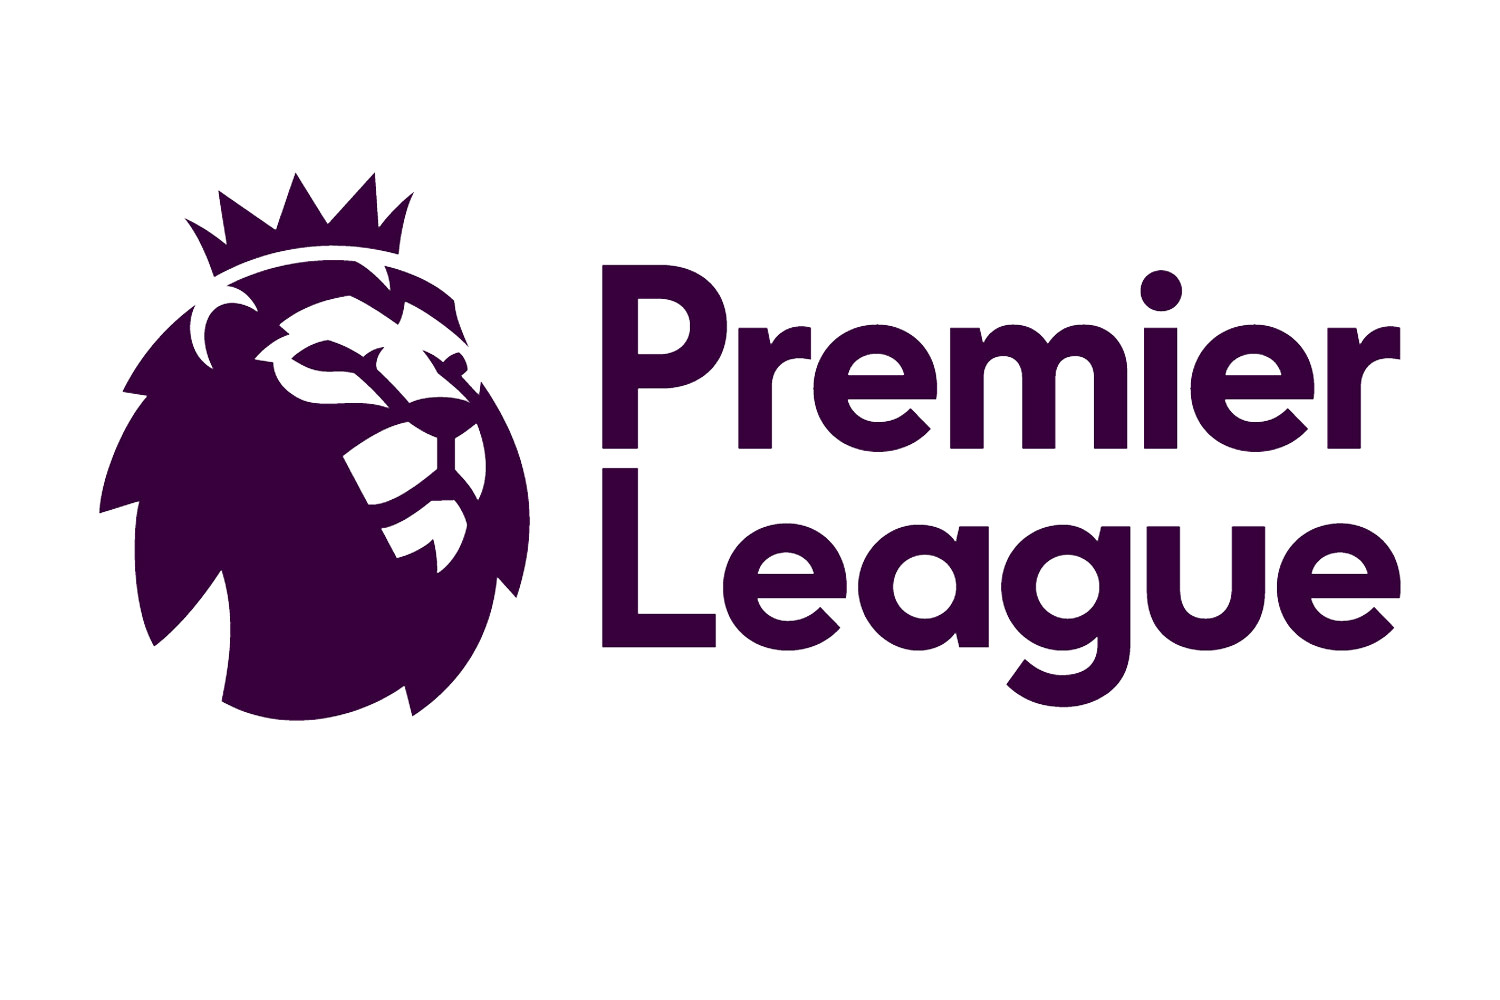 Premier League Transparent Background PNG Image